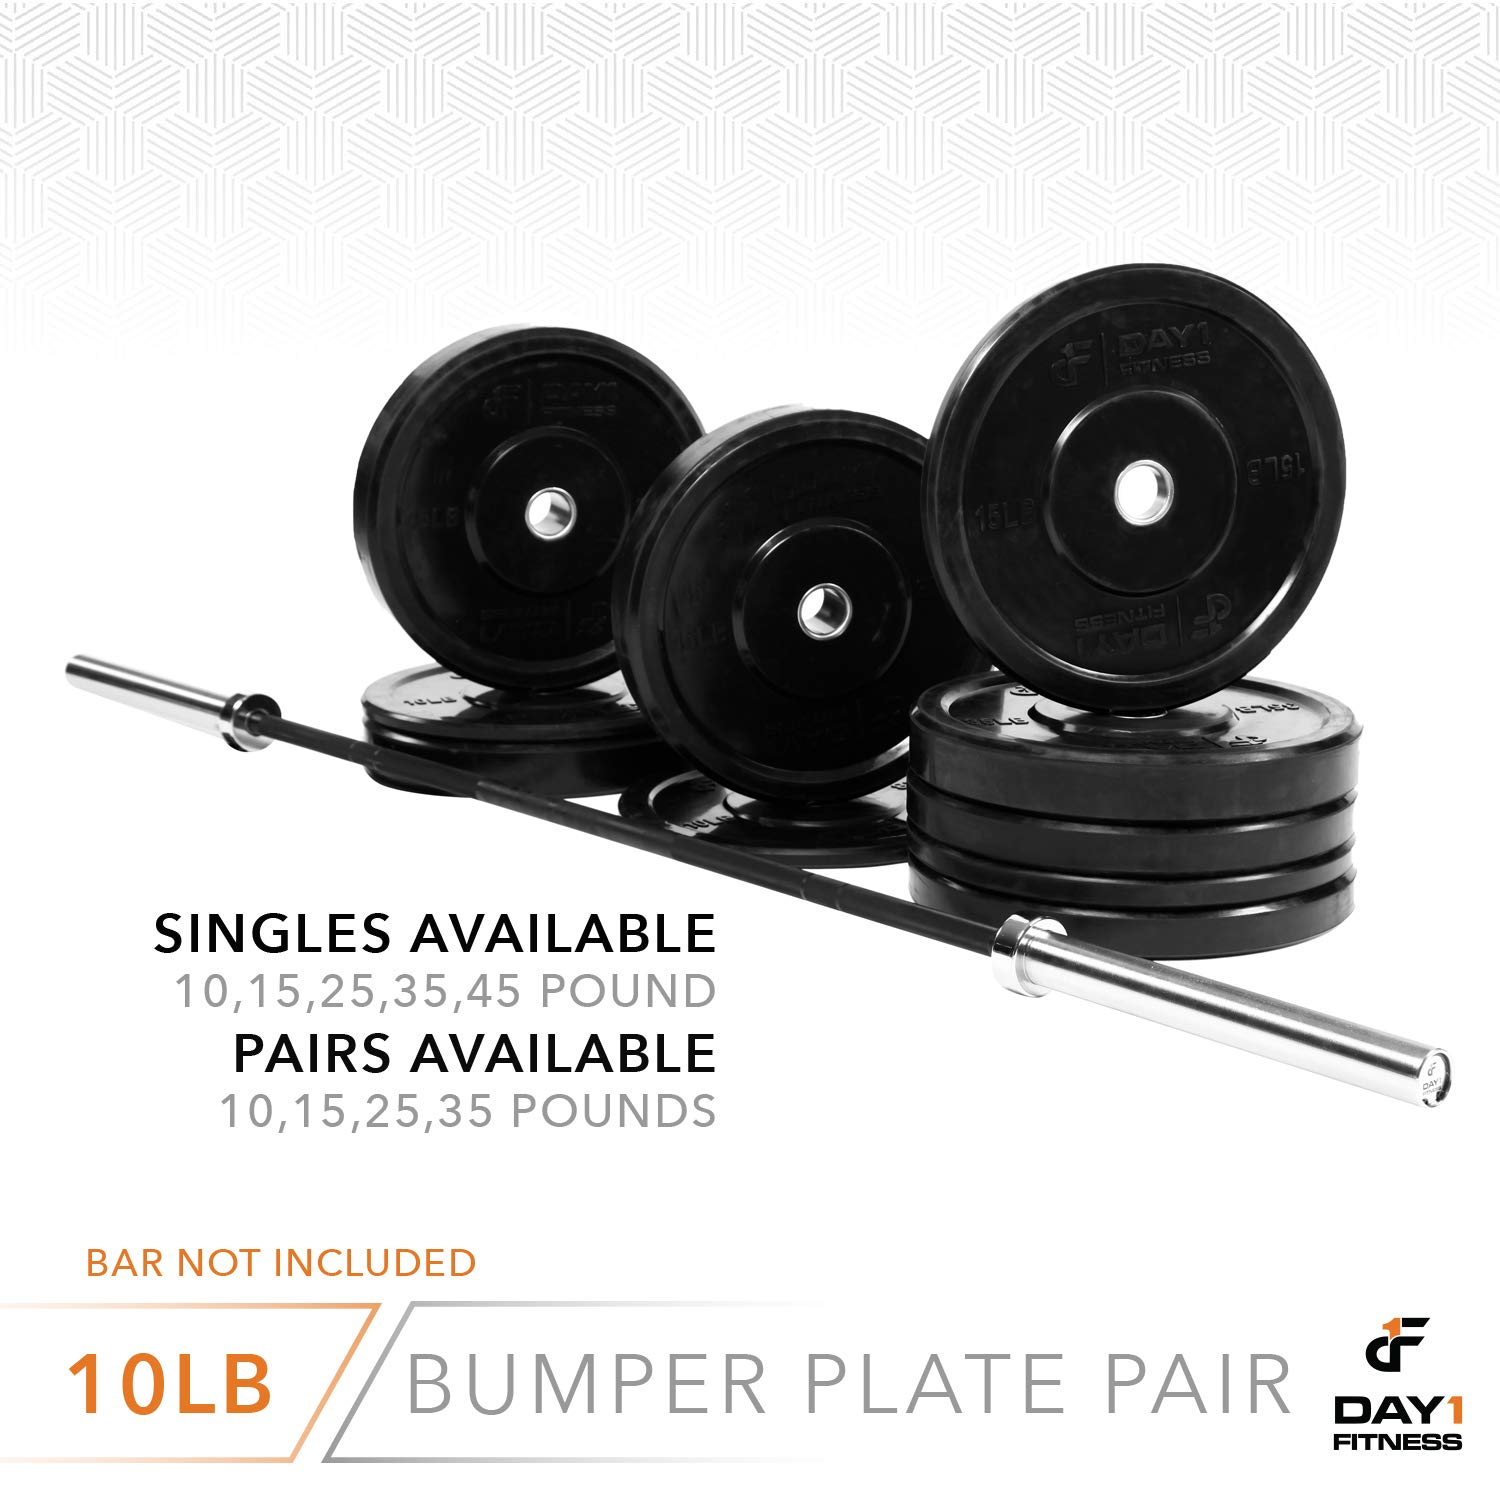 """Day 1 Fitness Olympic Bumper Weighted Plate 2"""" for Barbells, Bars – 10 lb Set of 2 Plates - Shock-Absorbing, Minimal Bounce Steel Weights with Bumpers for Lifting, Strength Training, and Working Out by Day 1 Fitness (Image #6)"""